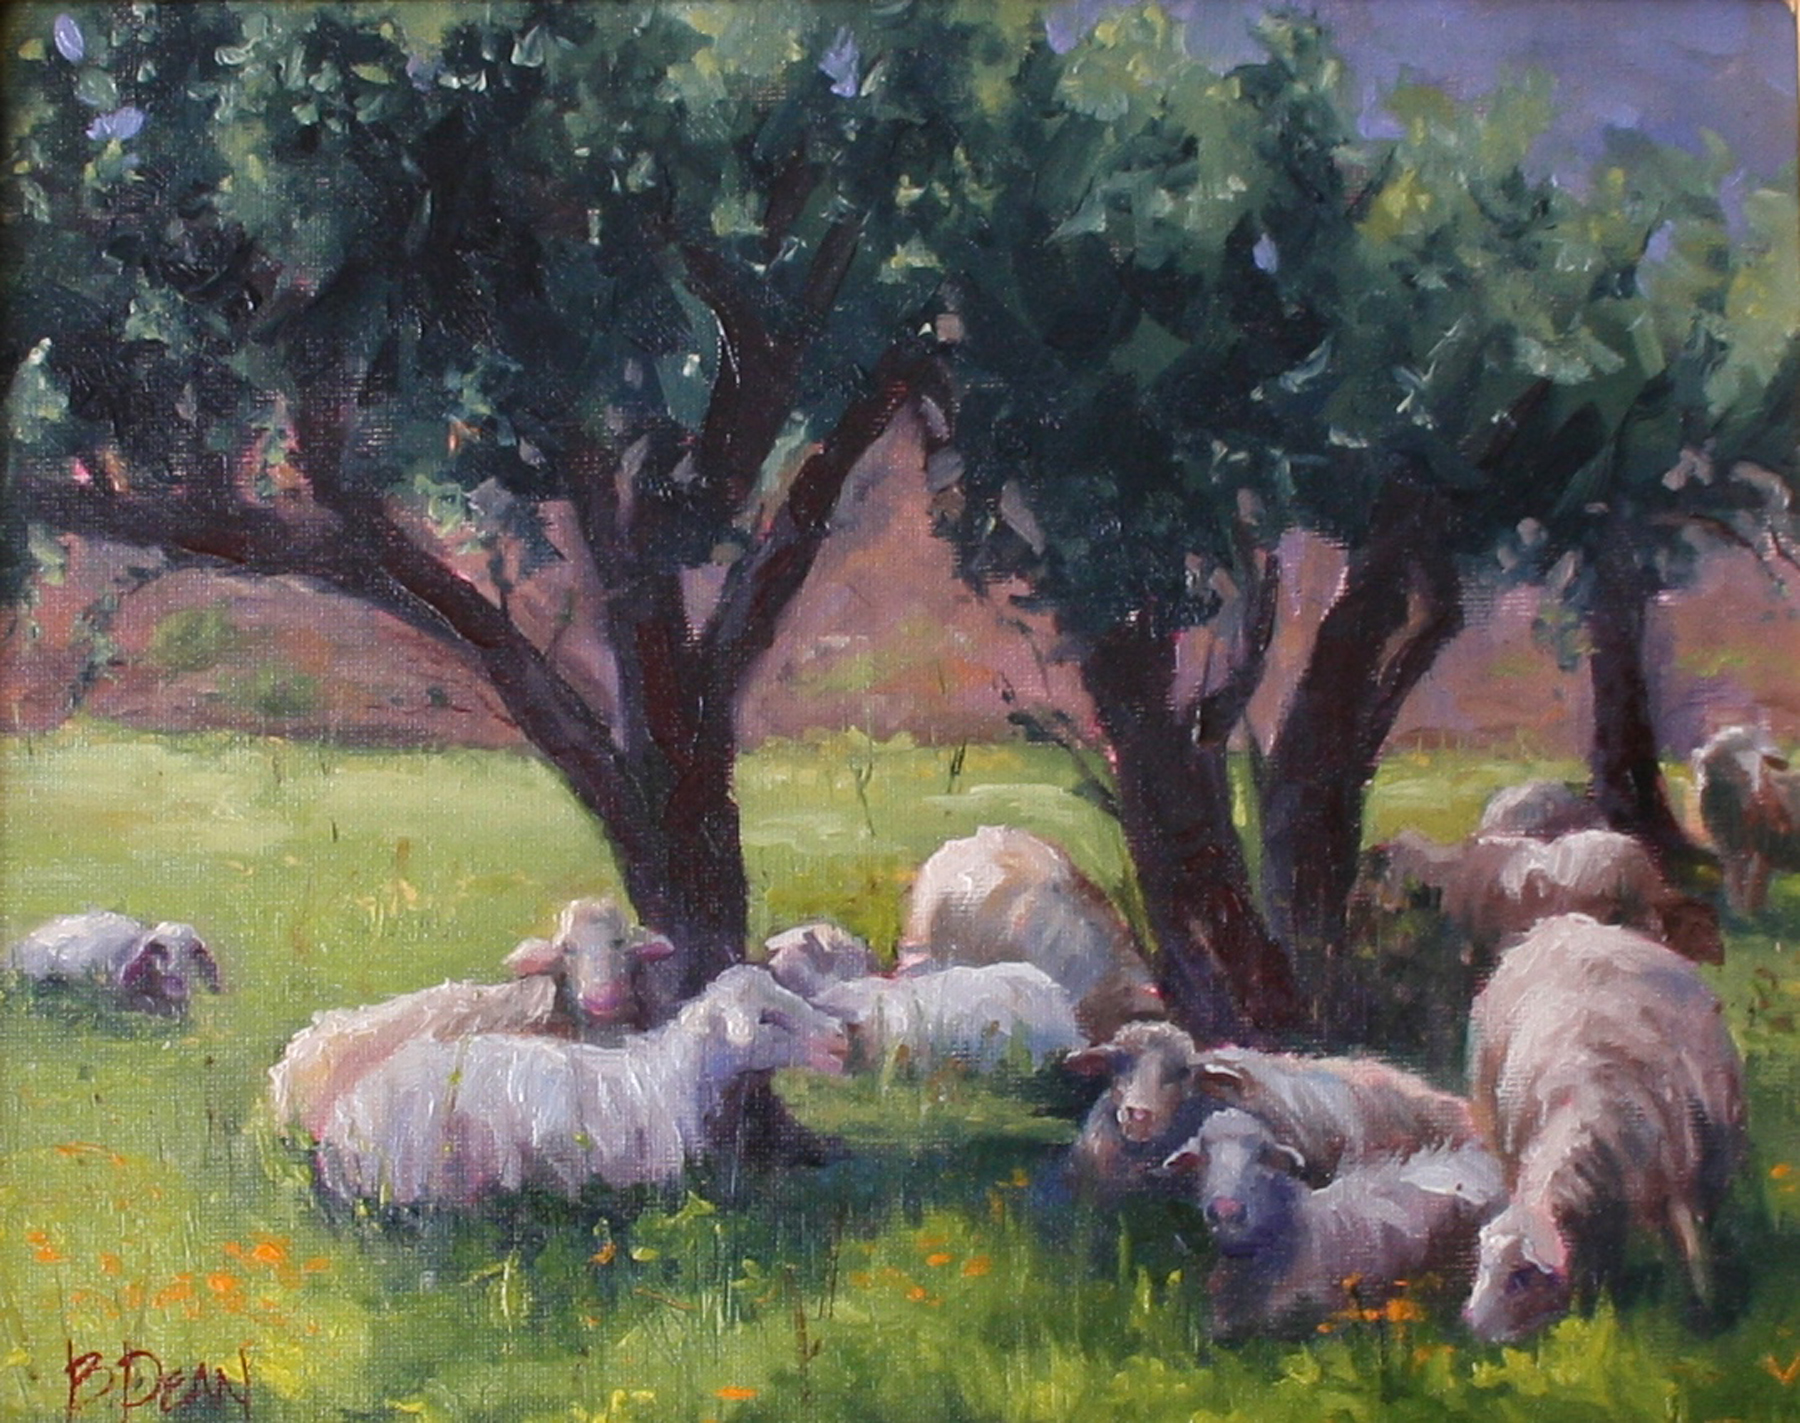 Beth Dean - Sheep in the Olive Grove